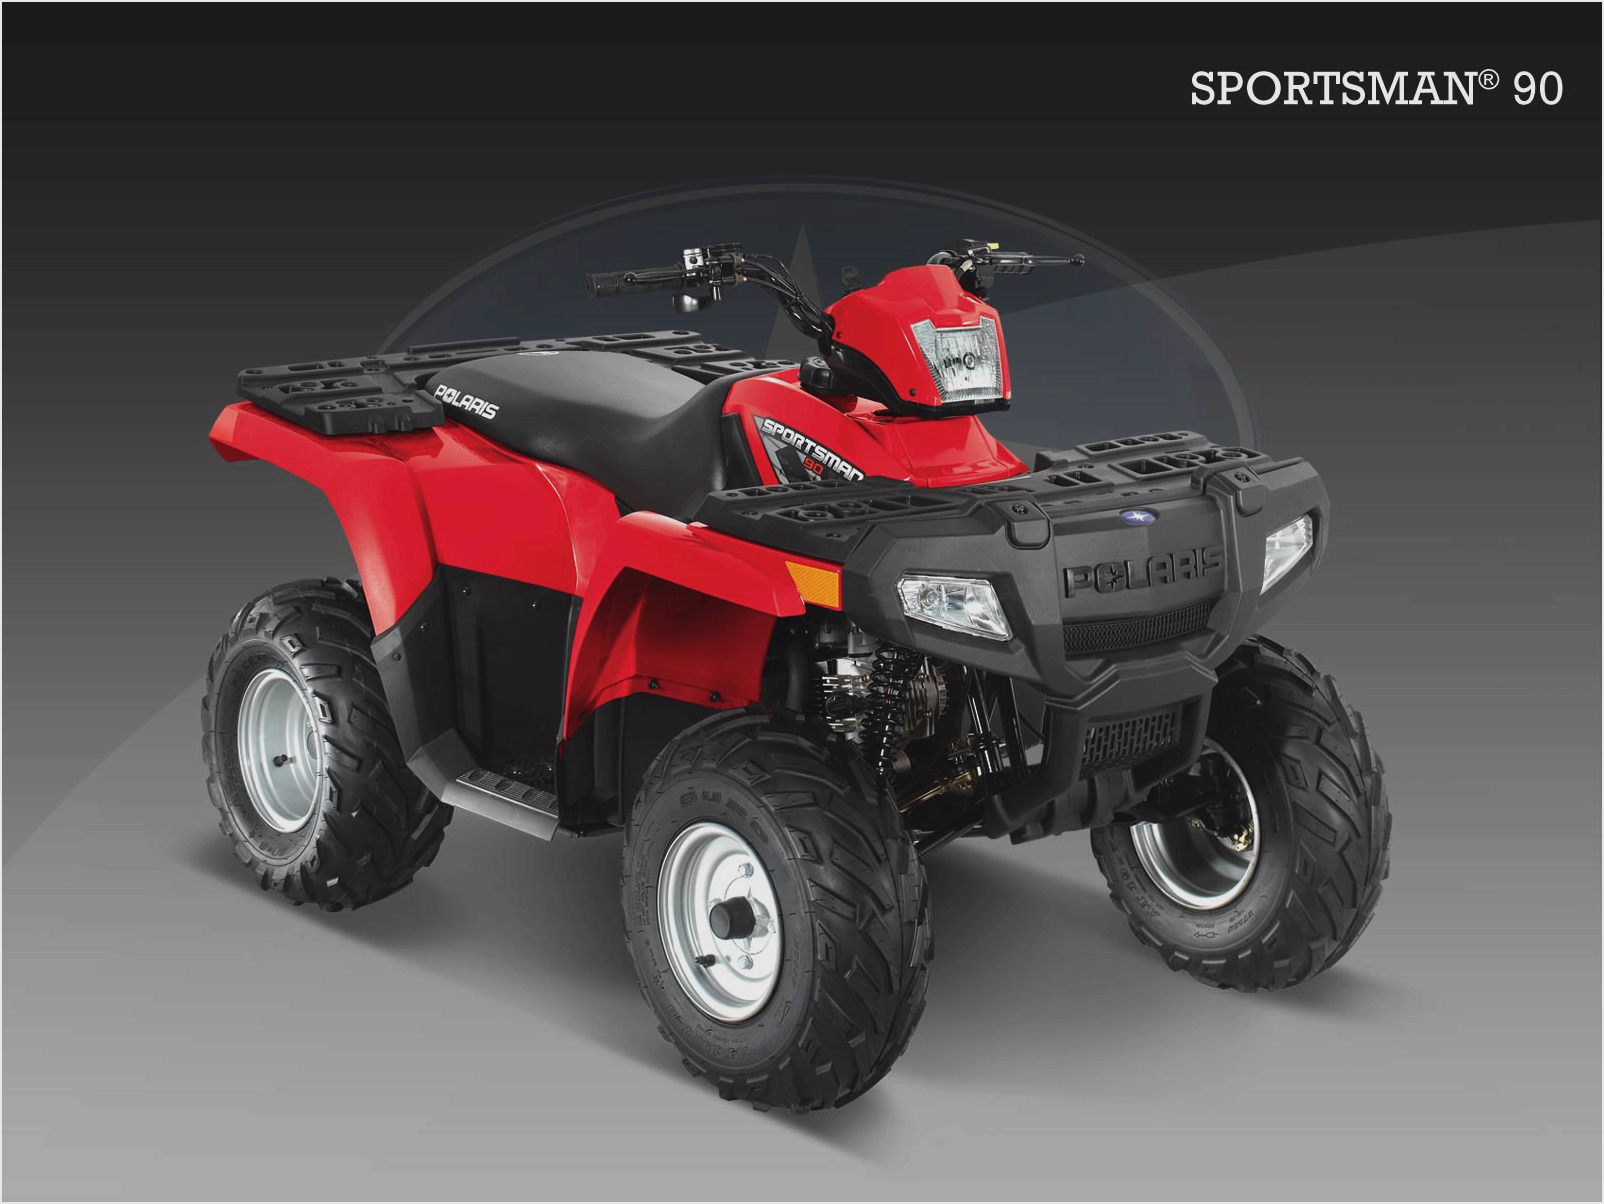 Polaris Sportsman 90 2006 images #175586